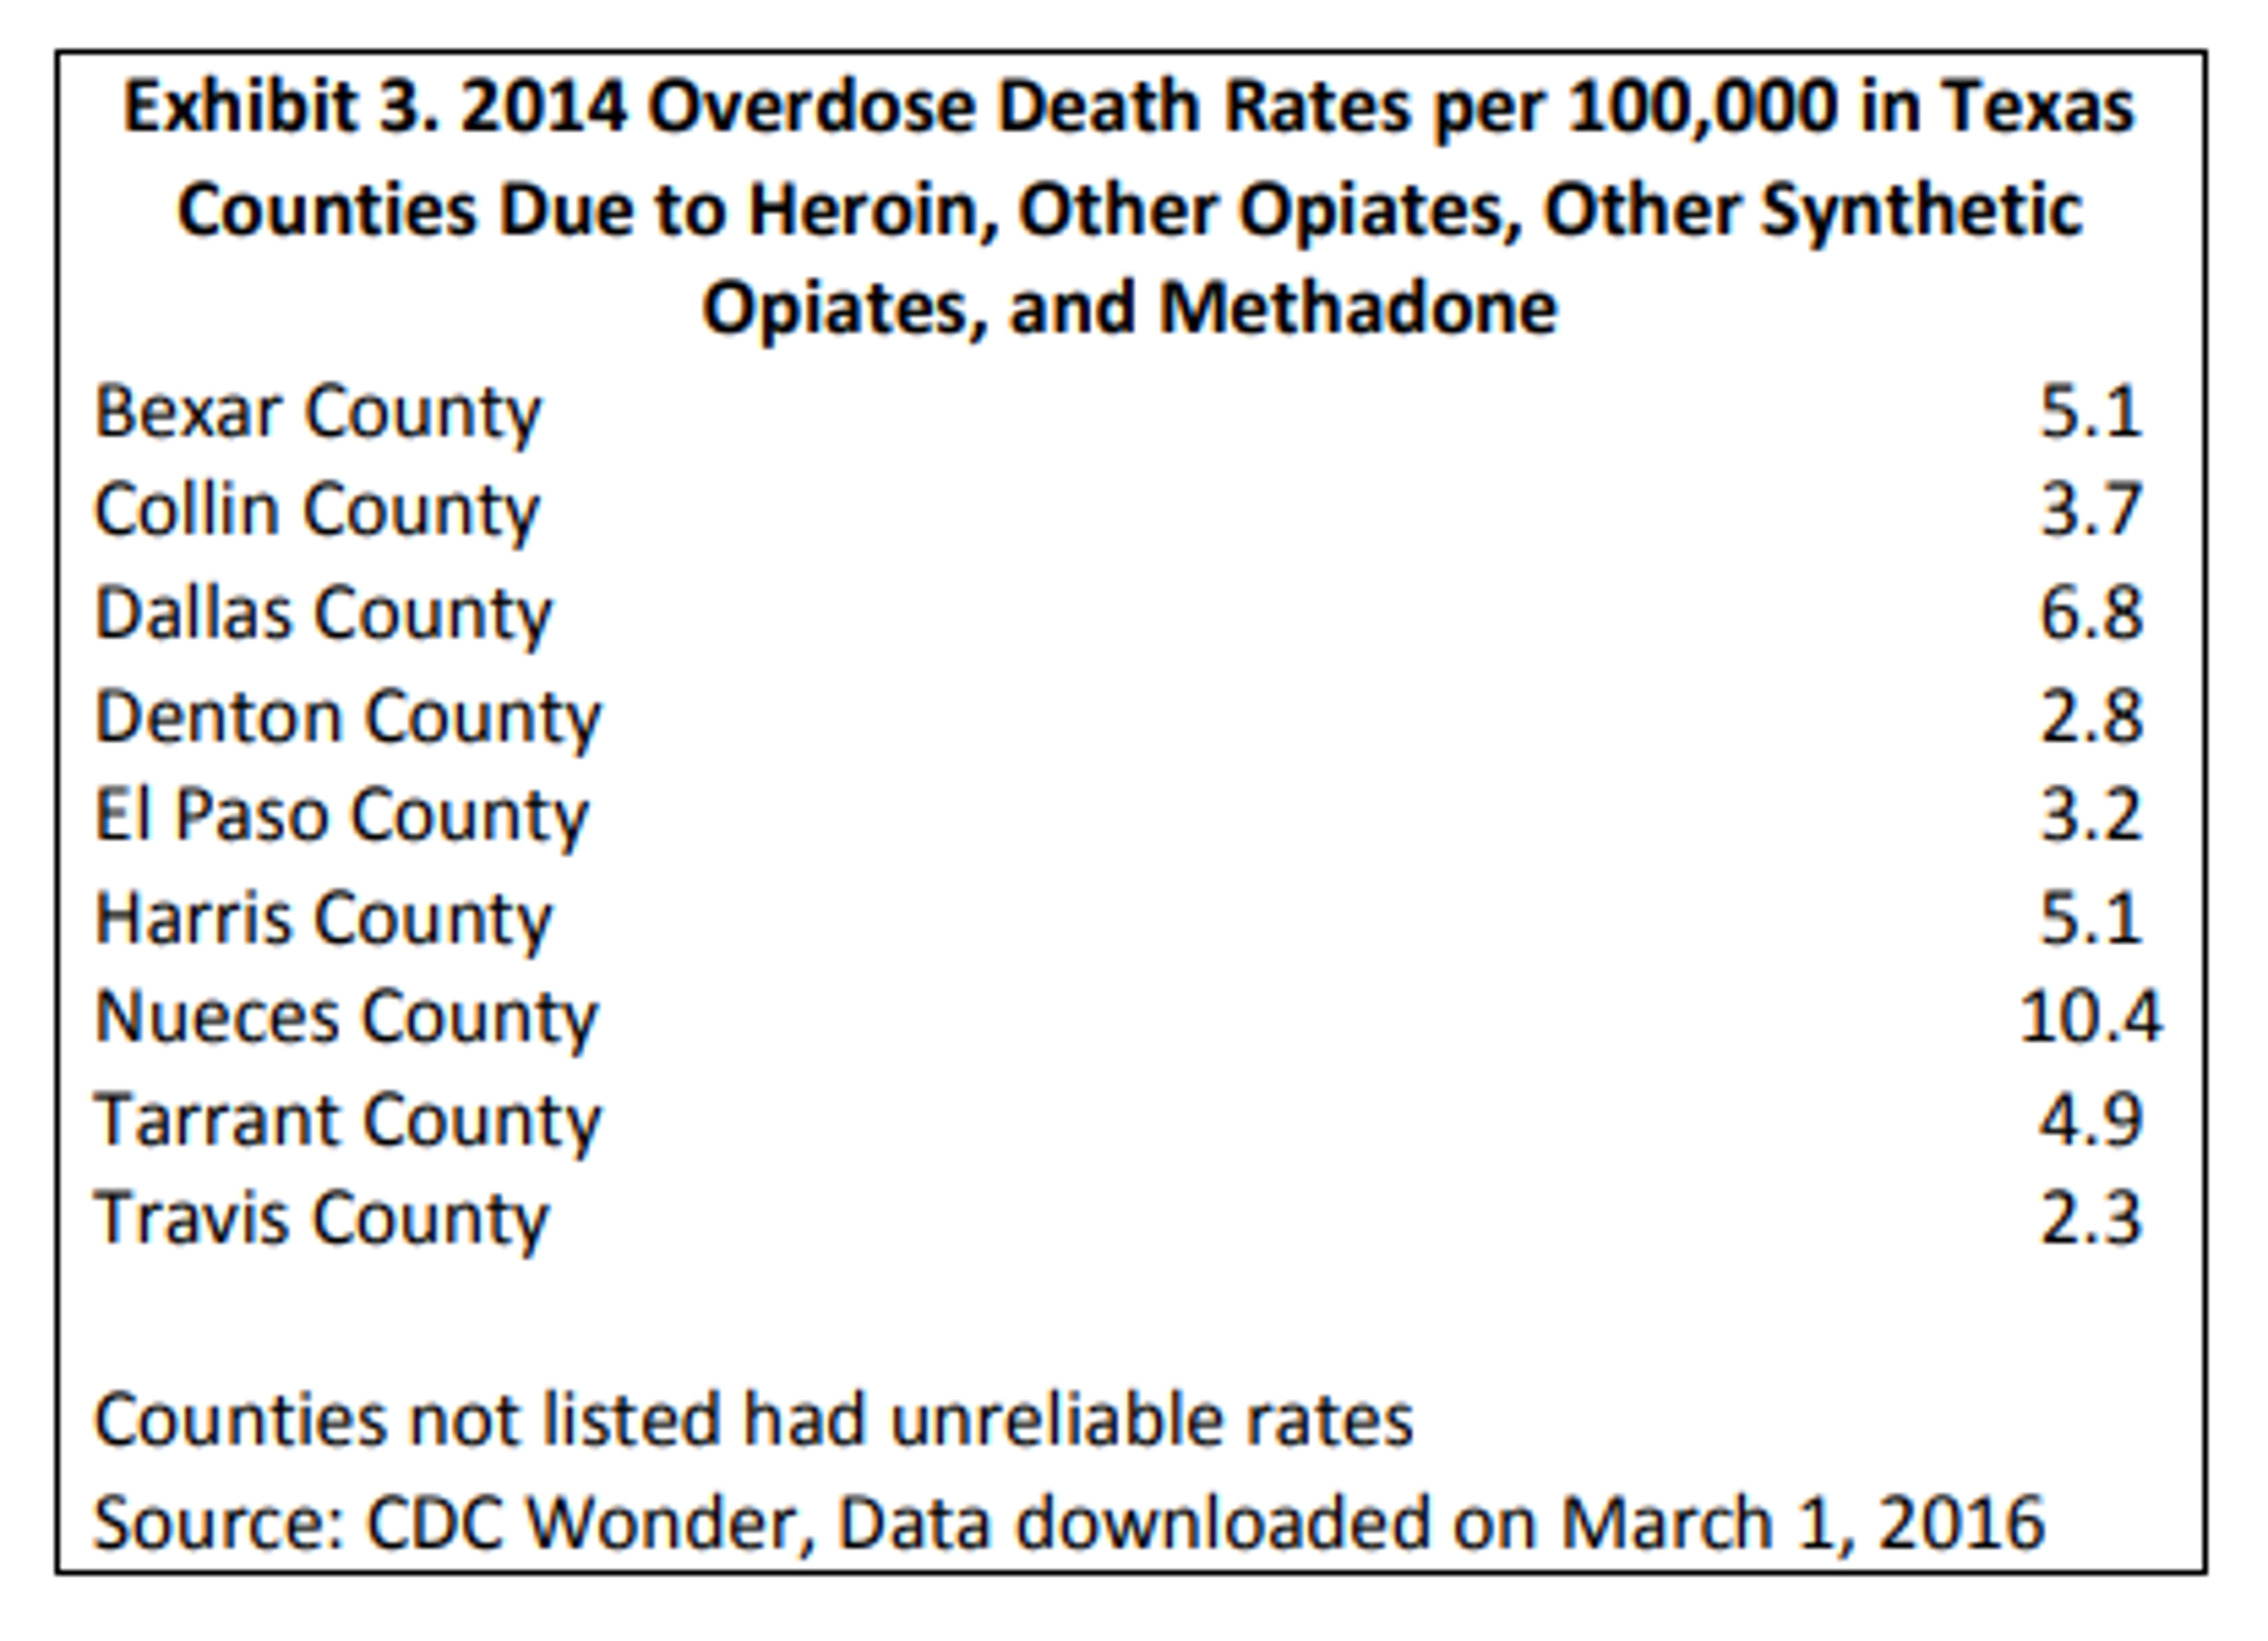 Overdose death rates per 100,000 in Texas due to heroin and other opiates.